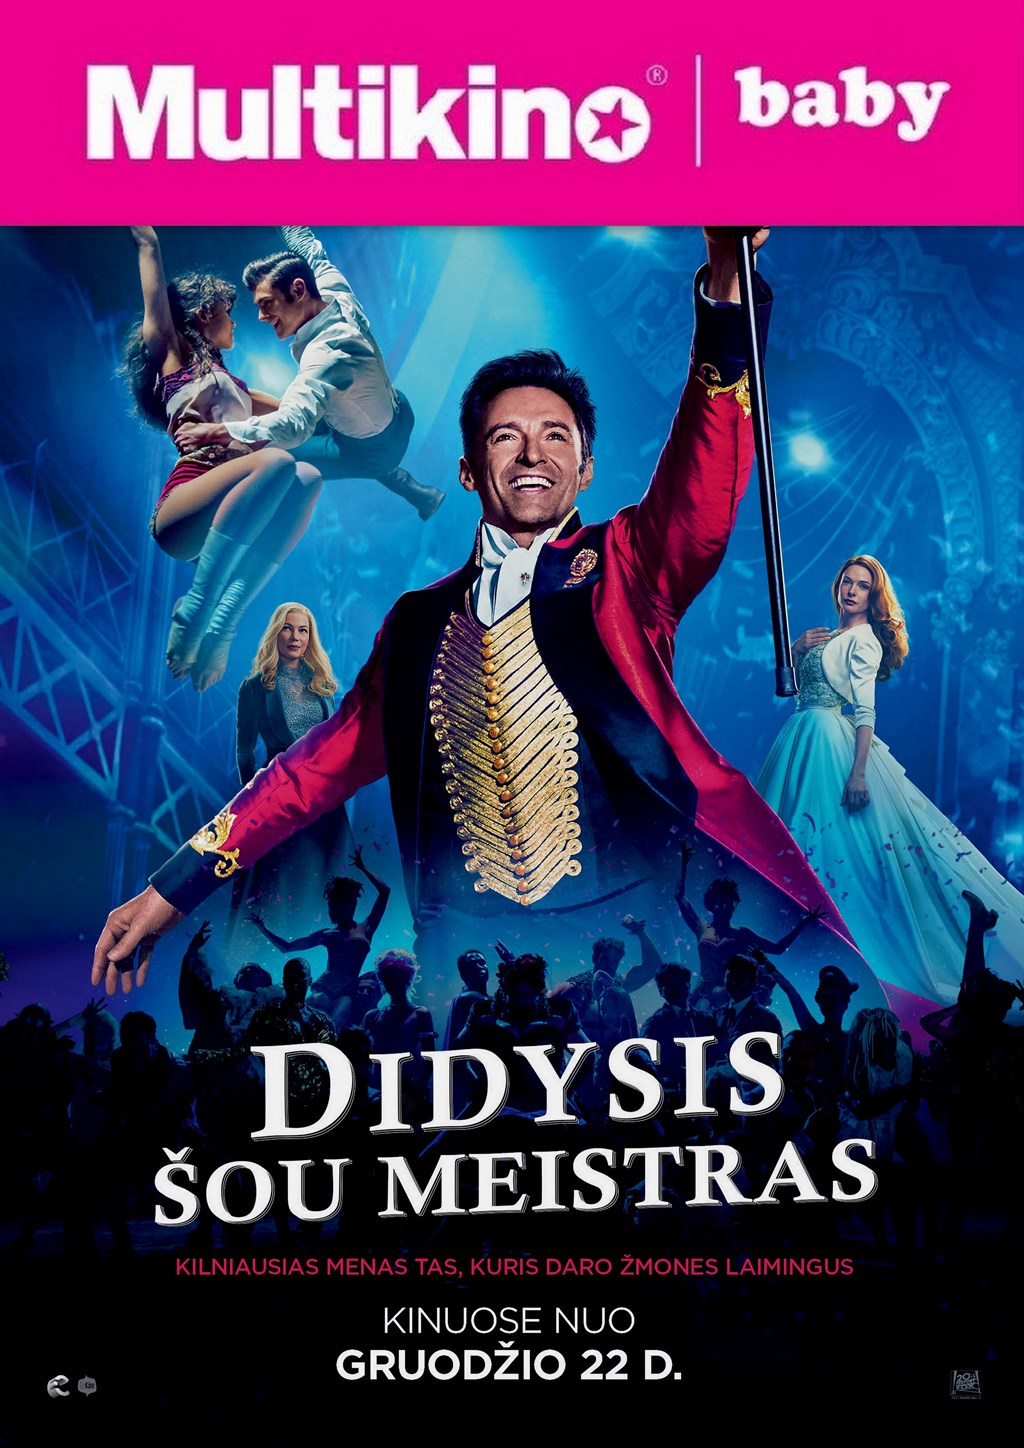 MultiBabyKino: Didysis šou meistras (The Greatest Showman)